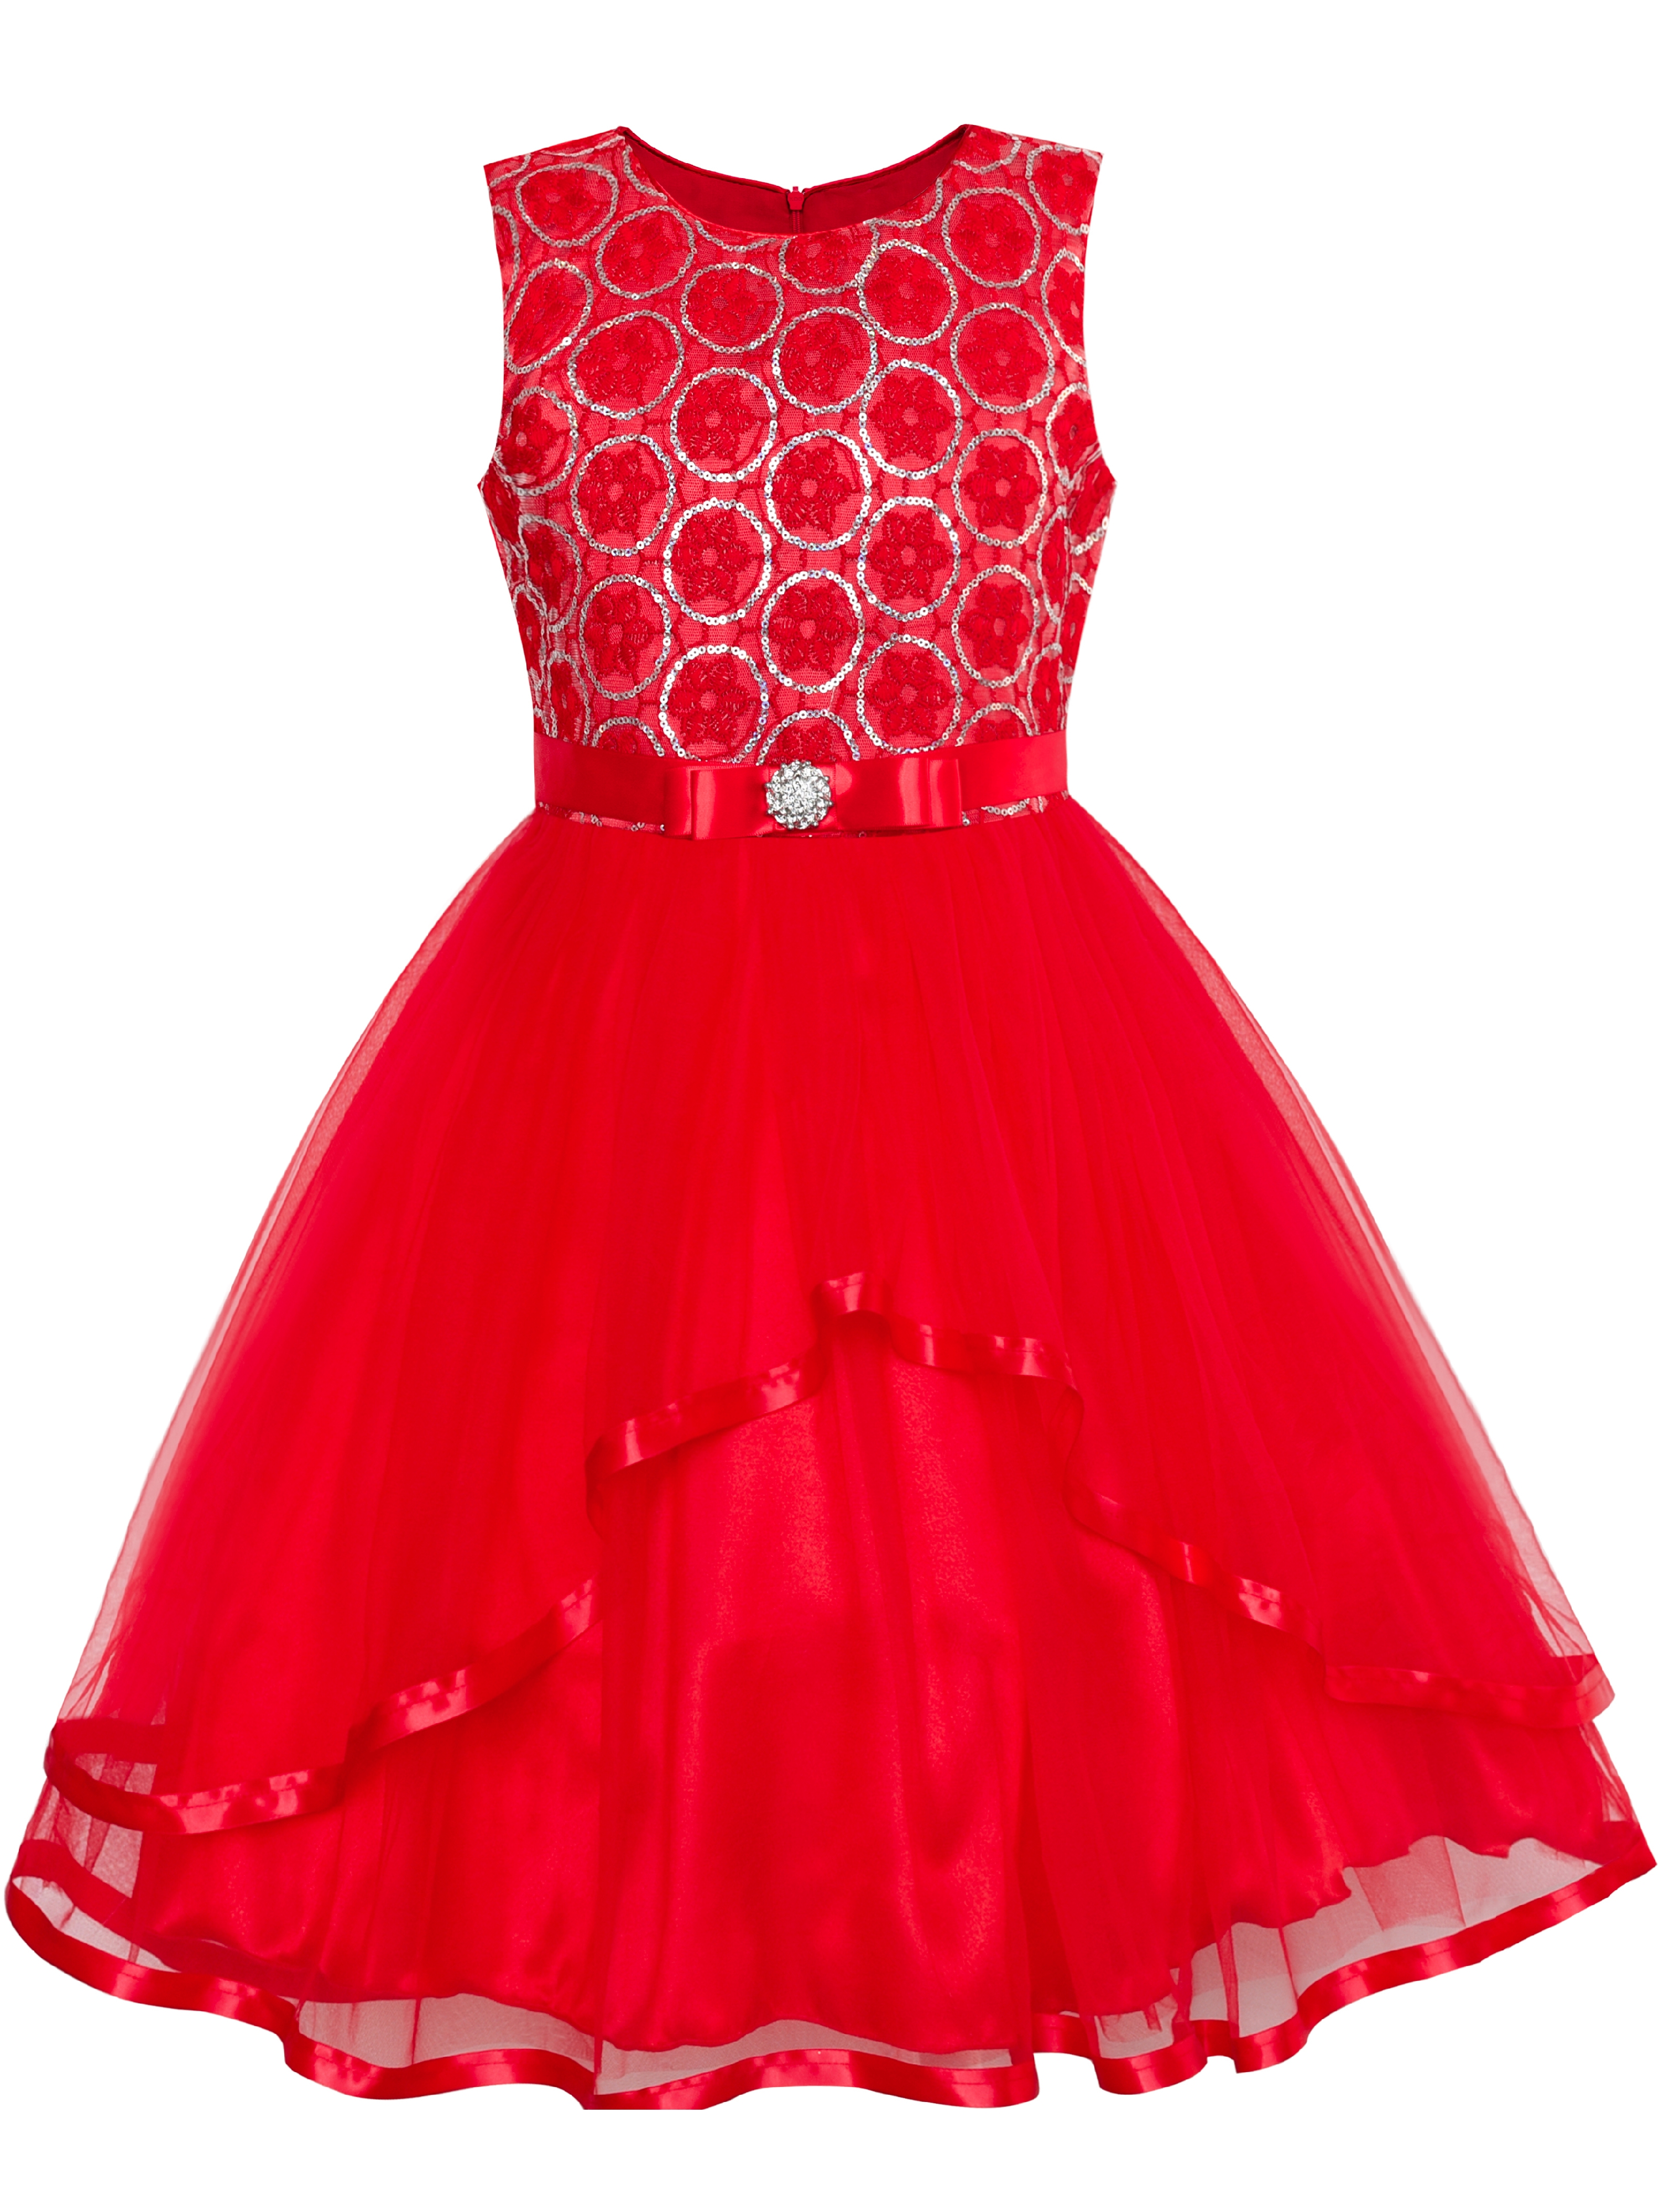 Flower Girl Dress Red Sequin Mesh Red Holiday Dress 12